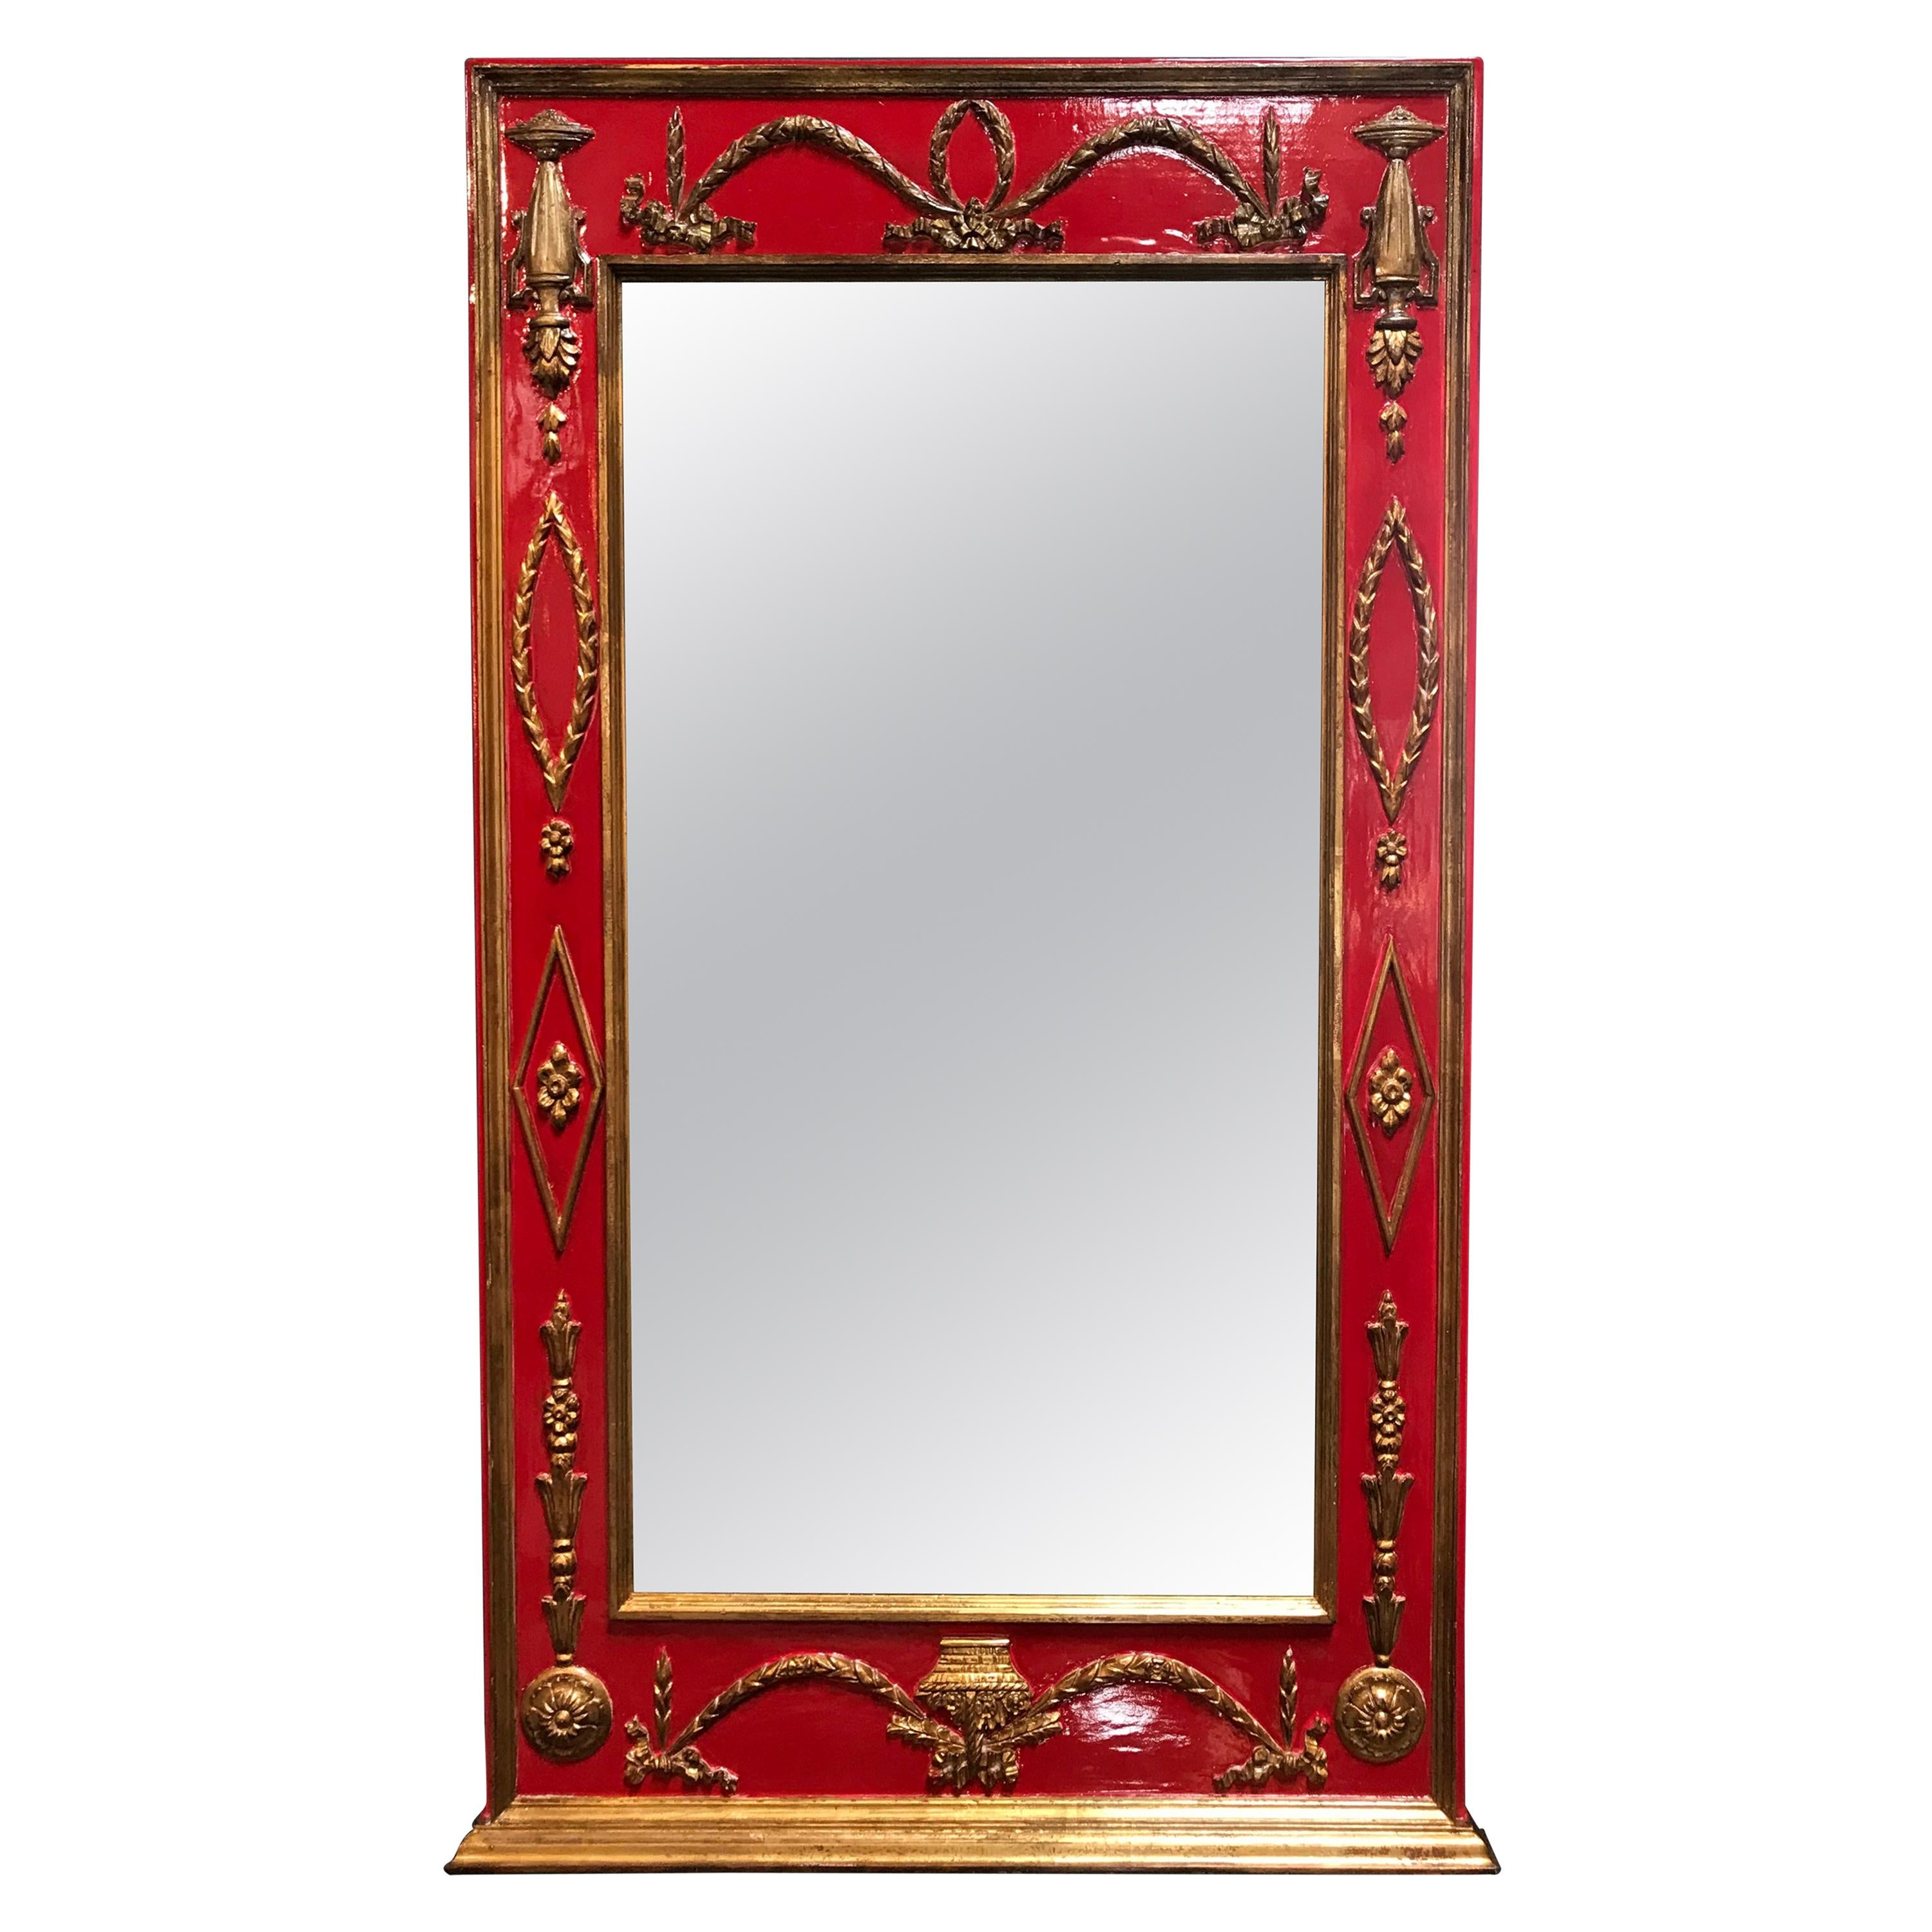 Antique Italian Fruitwood Neoclassical Style Wall Mirror, 1930s